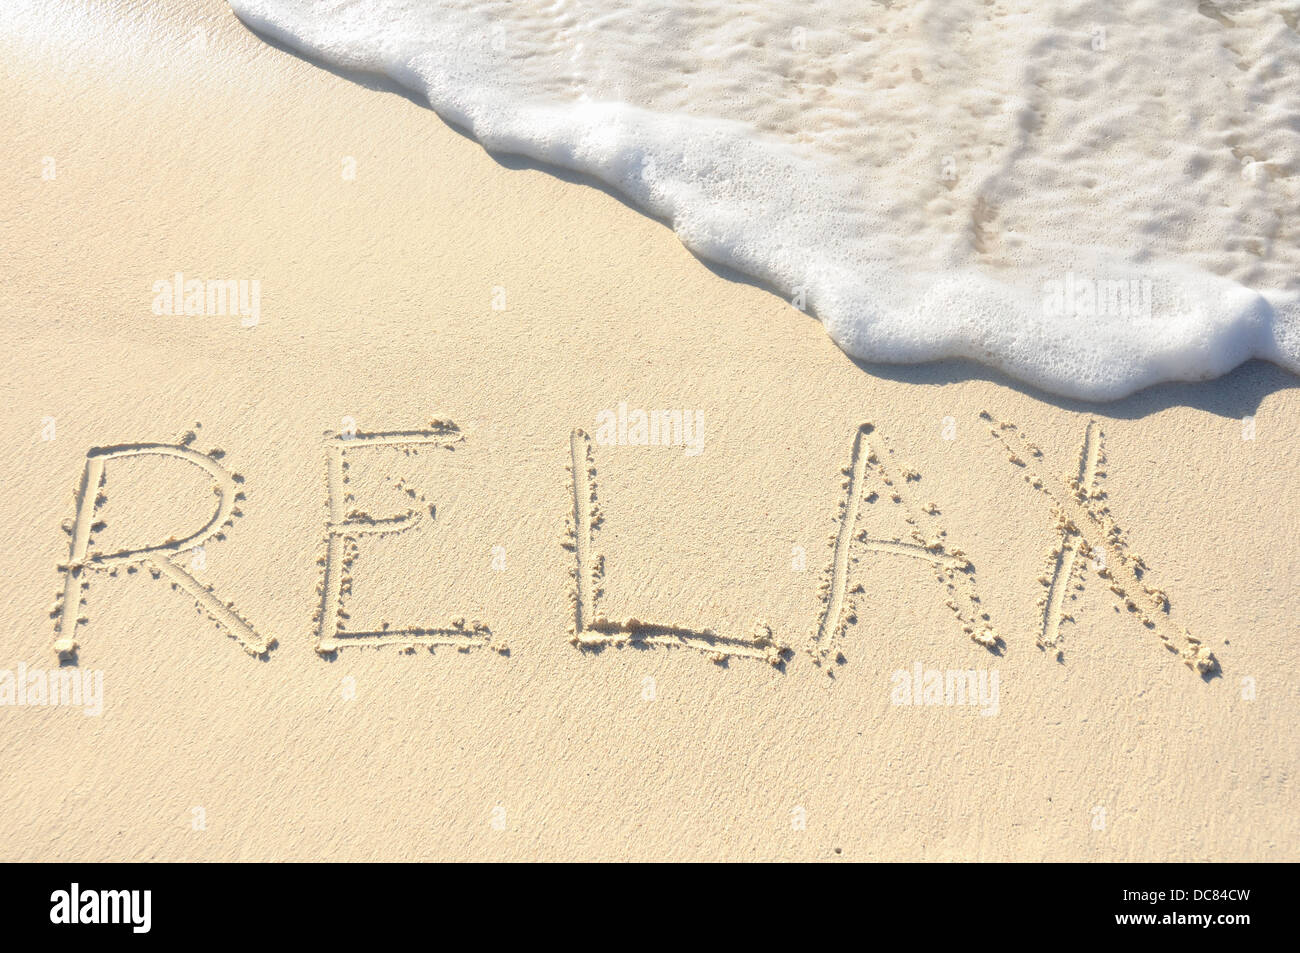 The Word 'Relax' Written in the Sand on a Beach - Stock Image